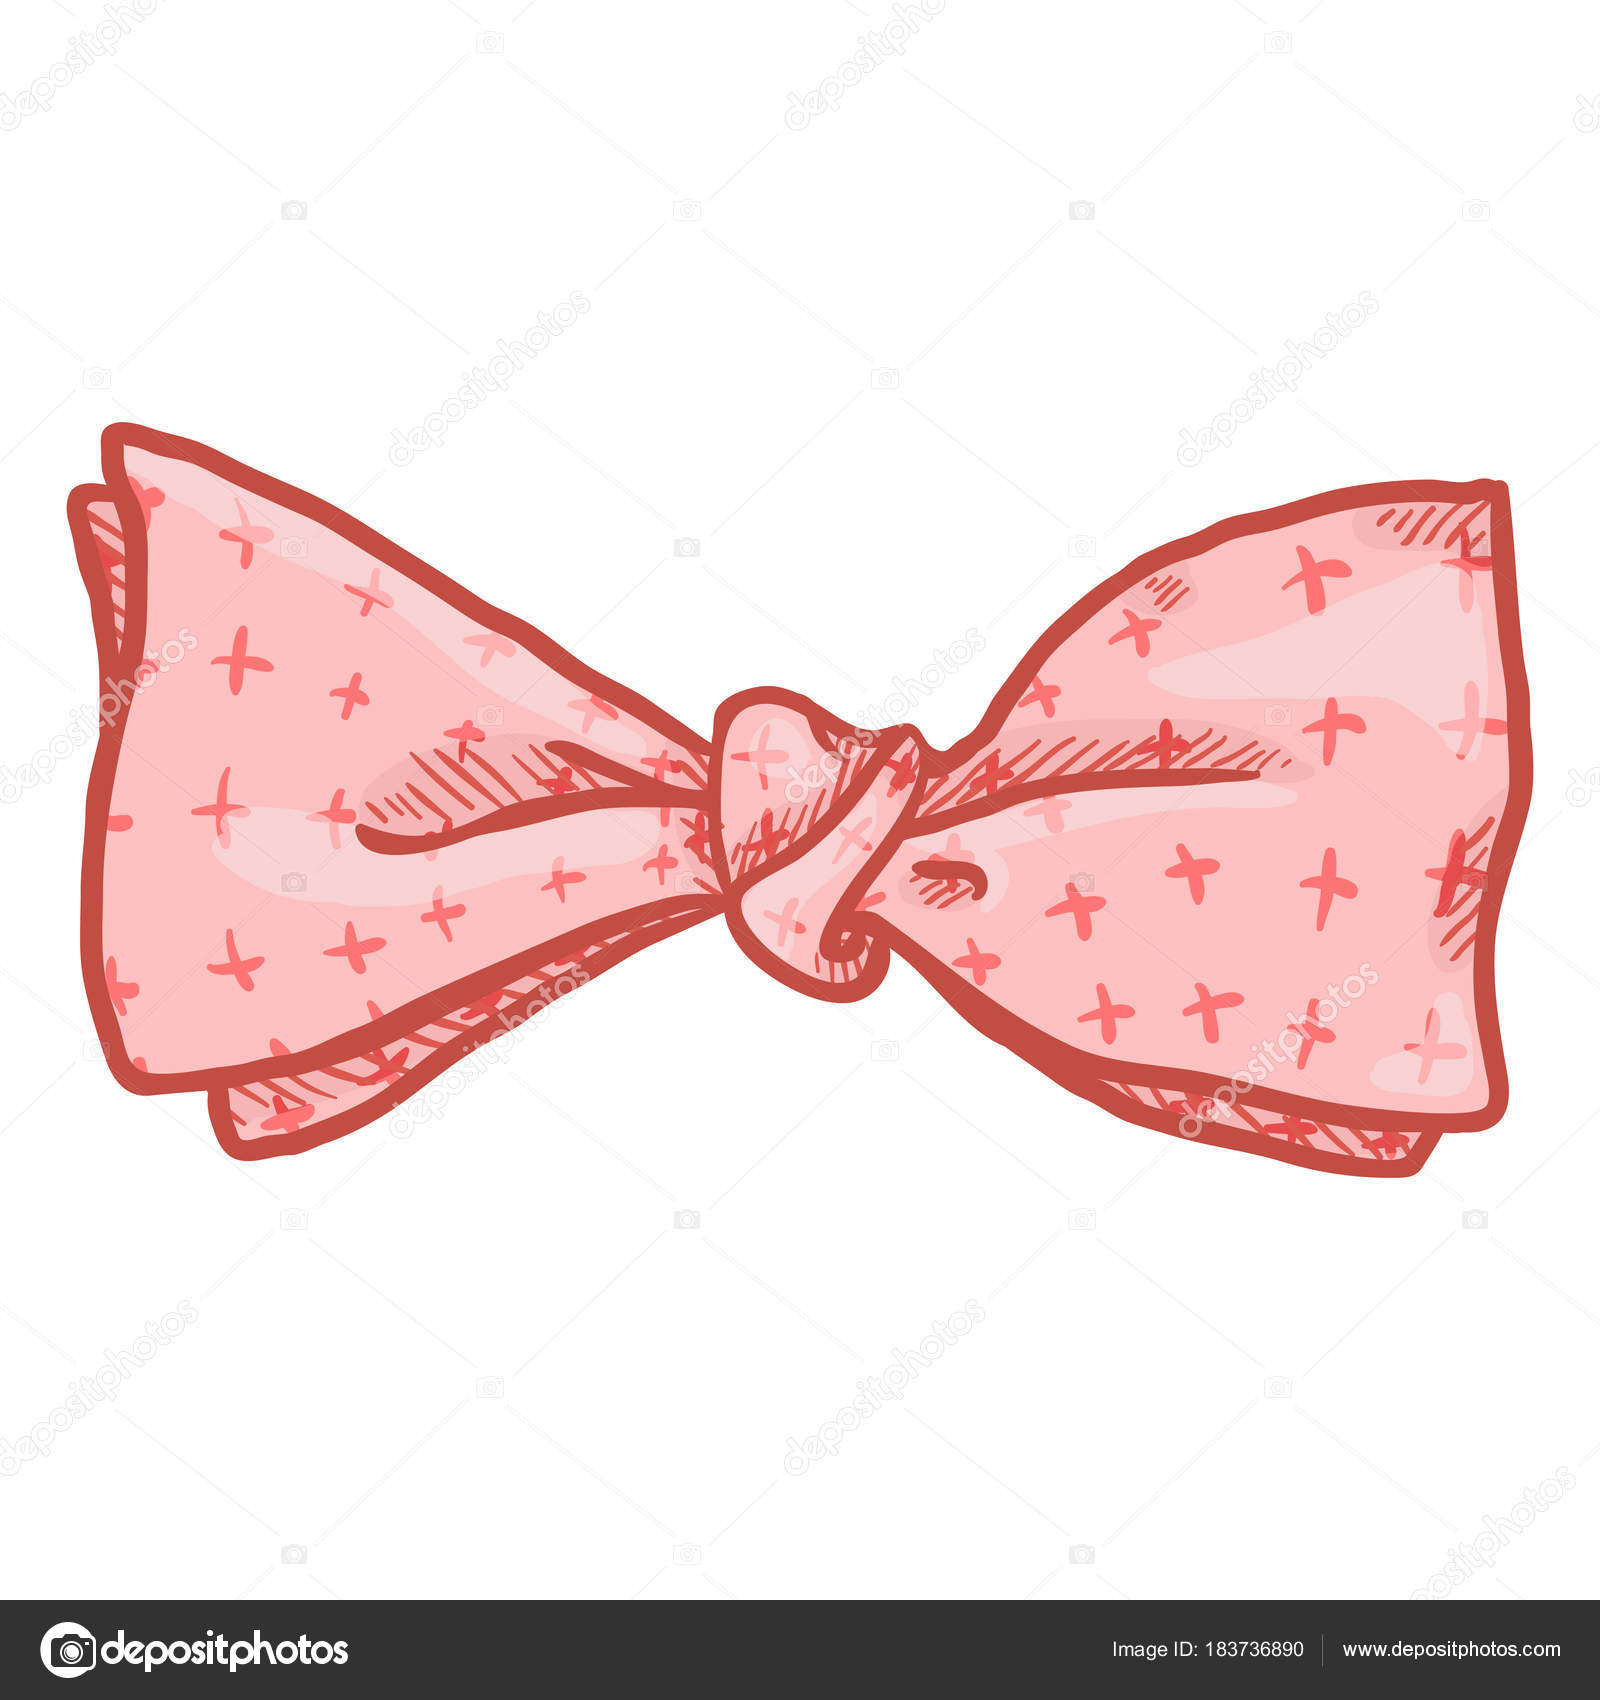 Cartoon Butterfly Pink Bow Tie Vintage Fashion Accessory Vector Illustration Stock Vector C Nikiteev 183736890